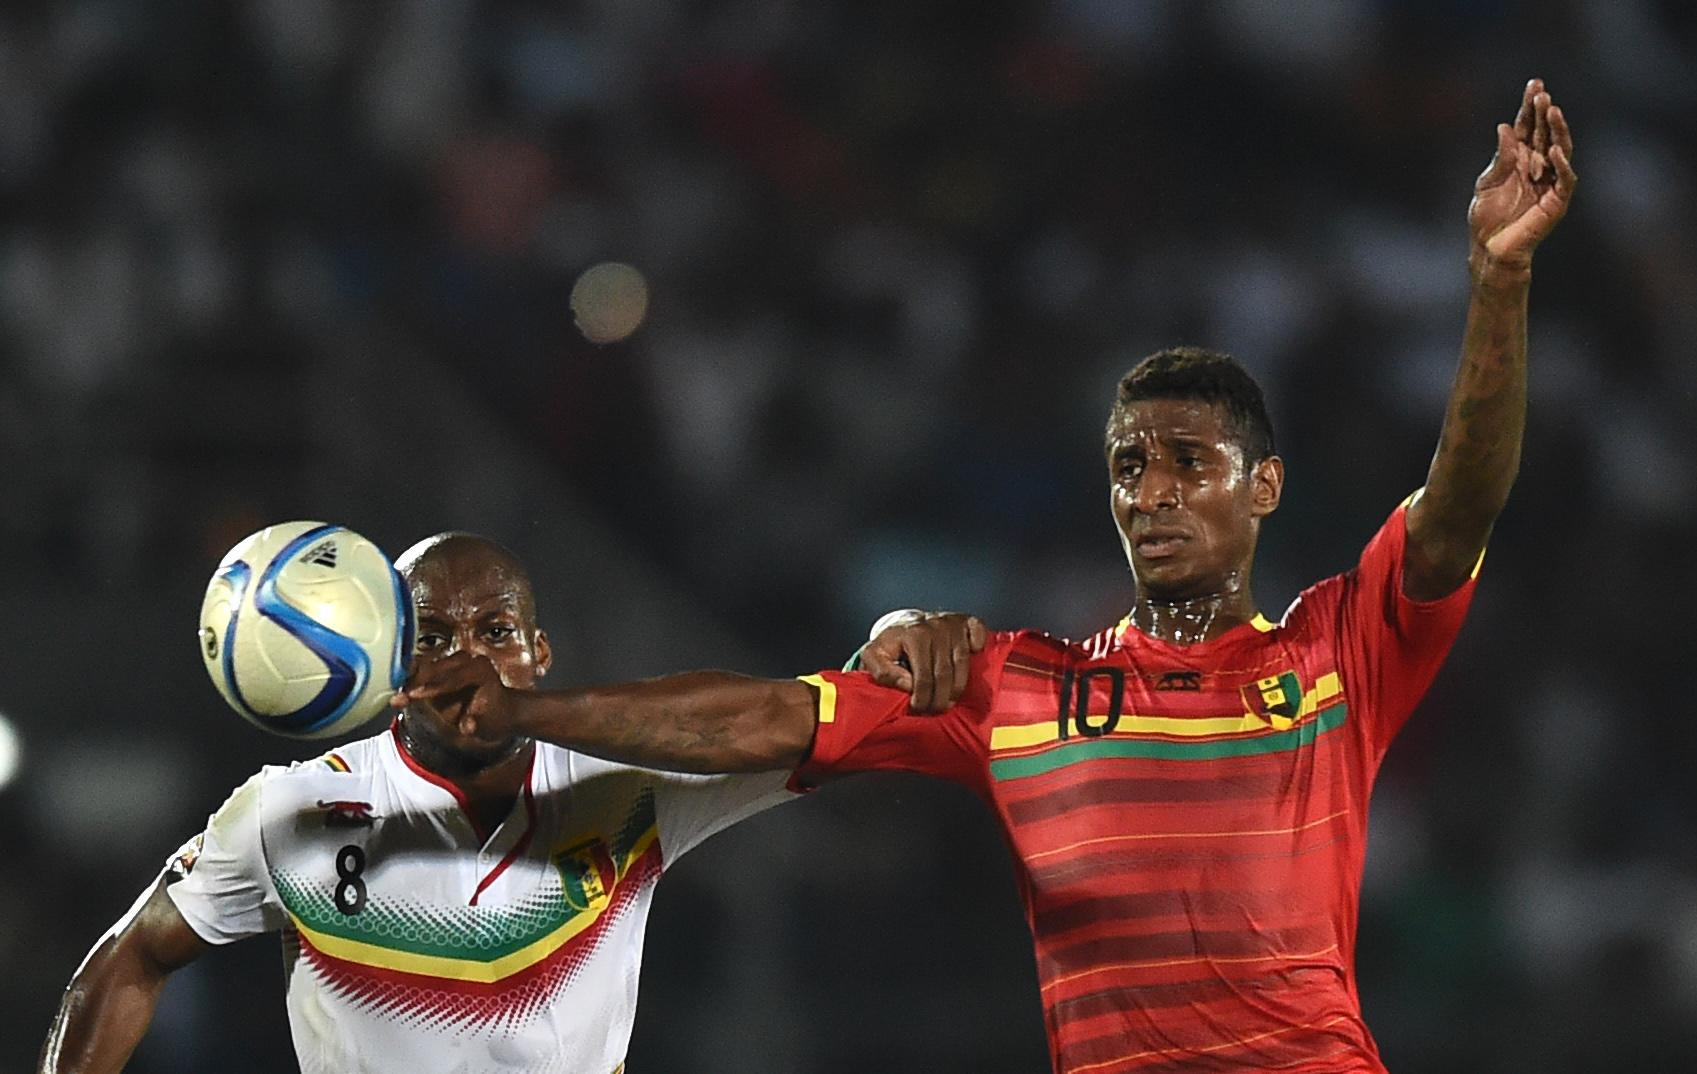 Guinea, Mali coaches say drawing lots unfair